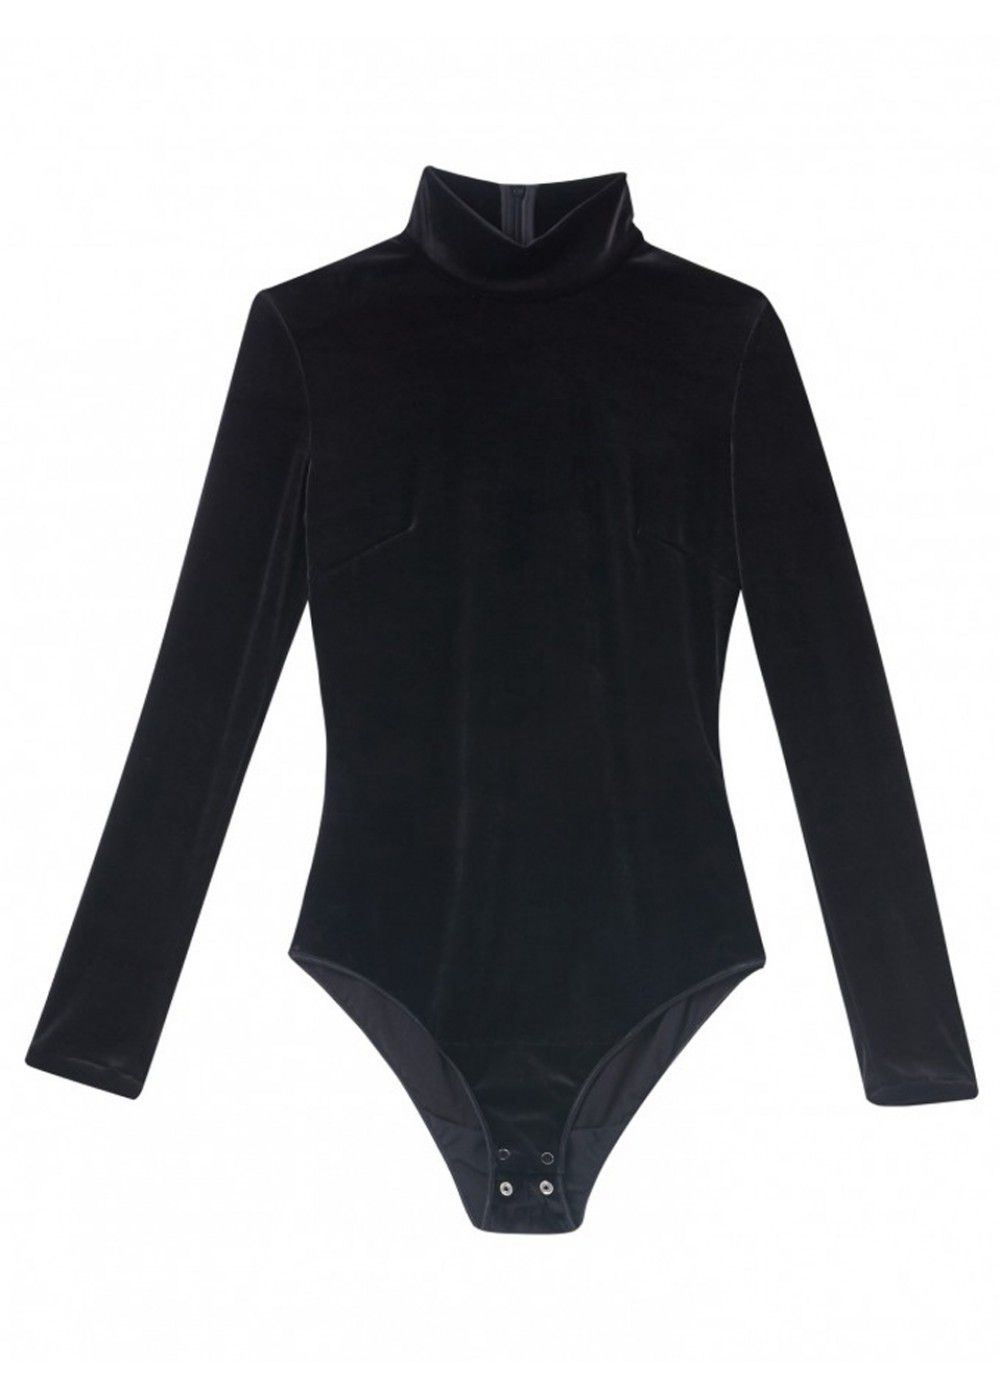 Vatanika Long Sleeve Body in Black